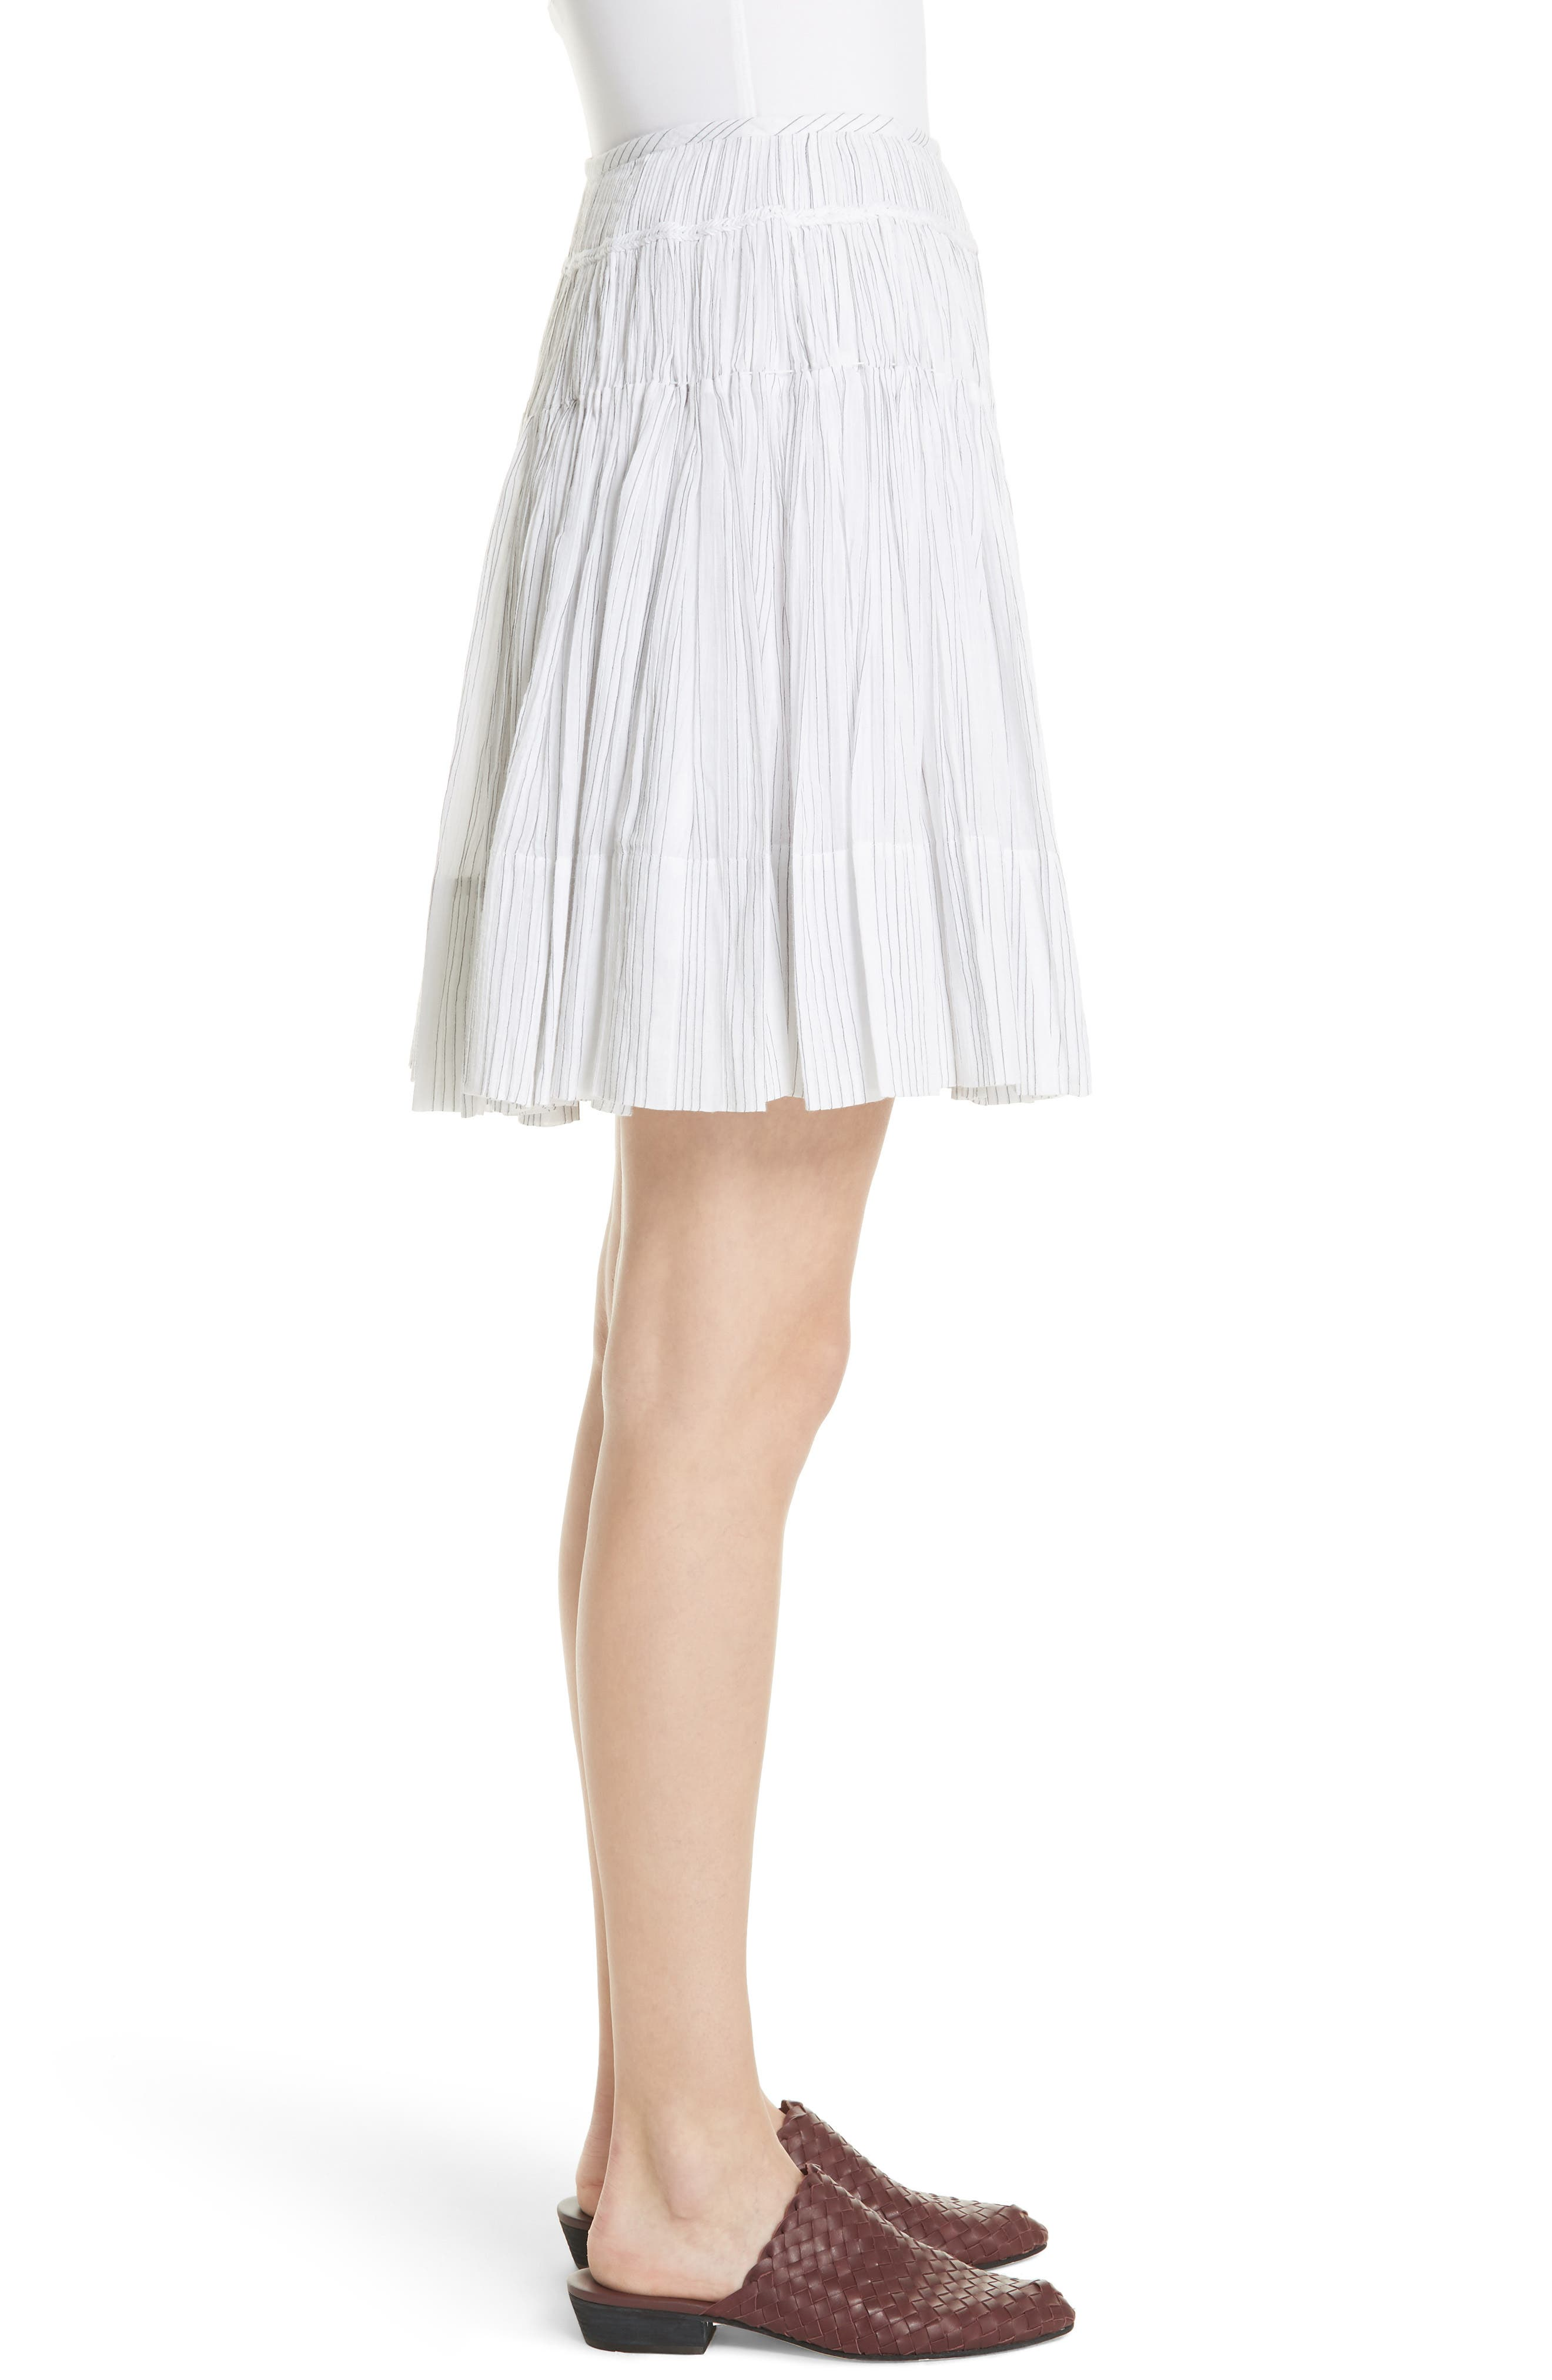 Variegated Stripe Pleat Skirt,                             Alternate thumbnail 3, color,                             Optic White/ Black